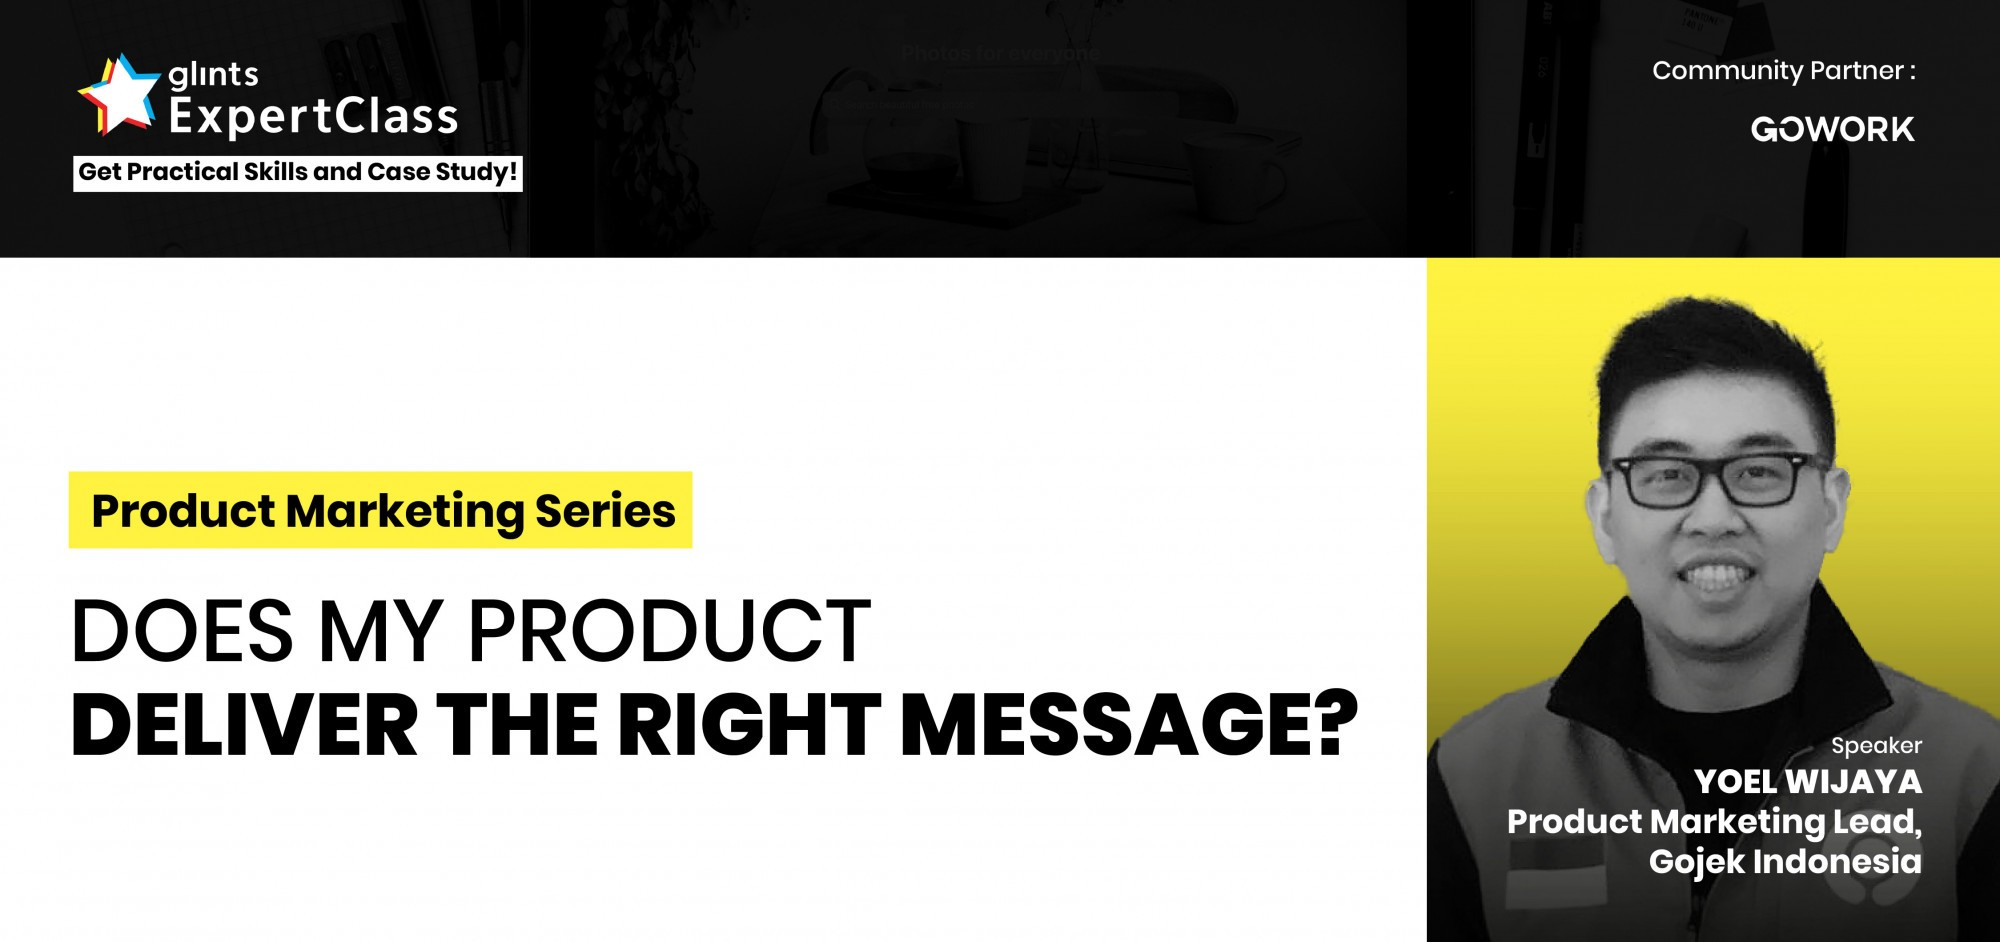 [Online Glints ExpertClass] Reality Check: Does My Product Deliver the Right Message?